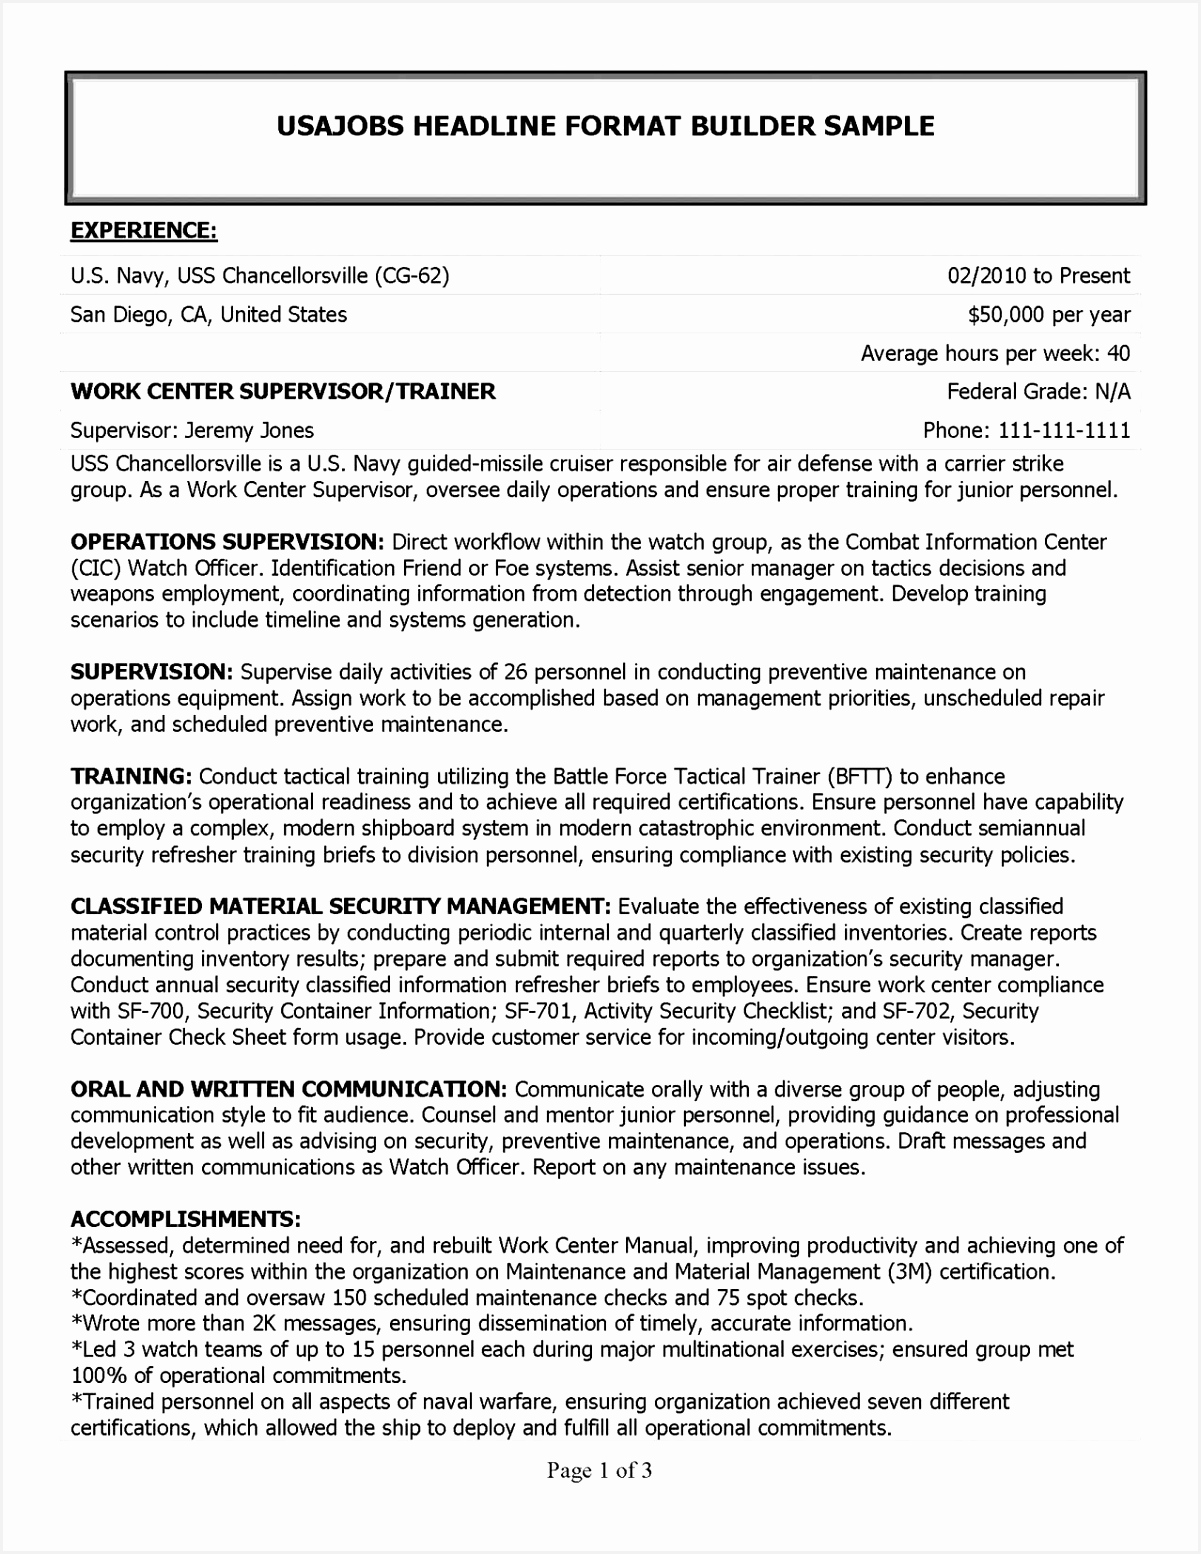 Examples Resumes for Jobs Avdlc Luxury Supply Chain Resume Examples Staggering Example Job Resume Awesome Of Examples Resumes for Jobs J0iah Inspirational 46 Ideal Resume Examples for Jobs Od U – Resume Samples